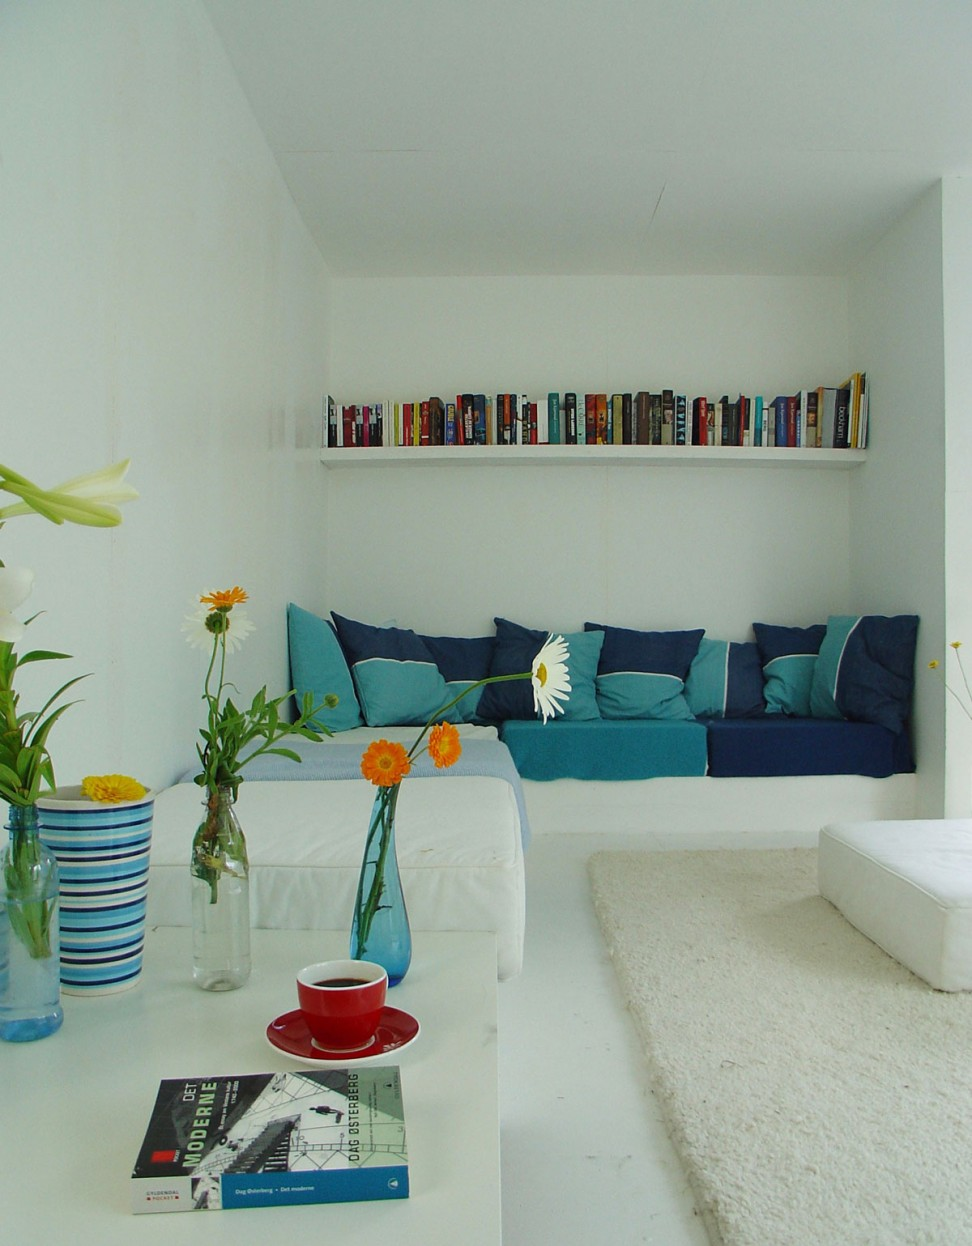 Colorful Flowers In Vase Placed On White Table With Blue Sofa View In Corner